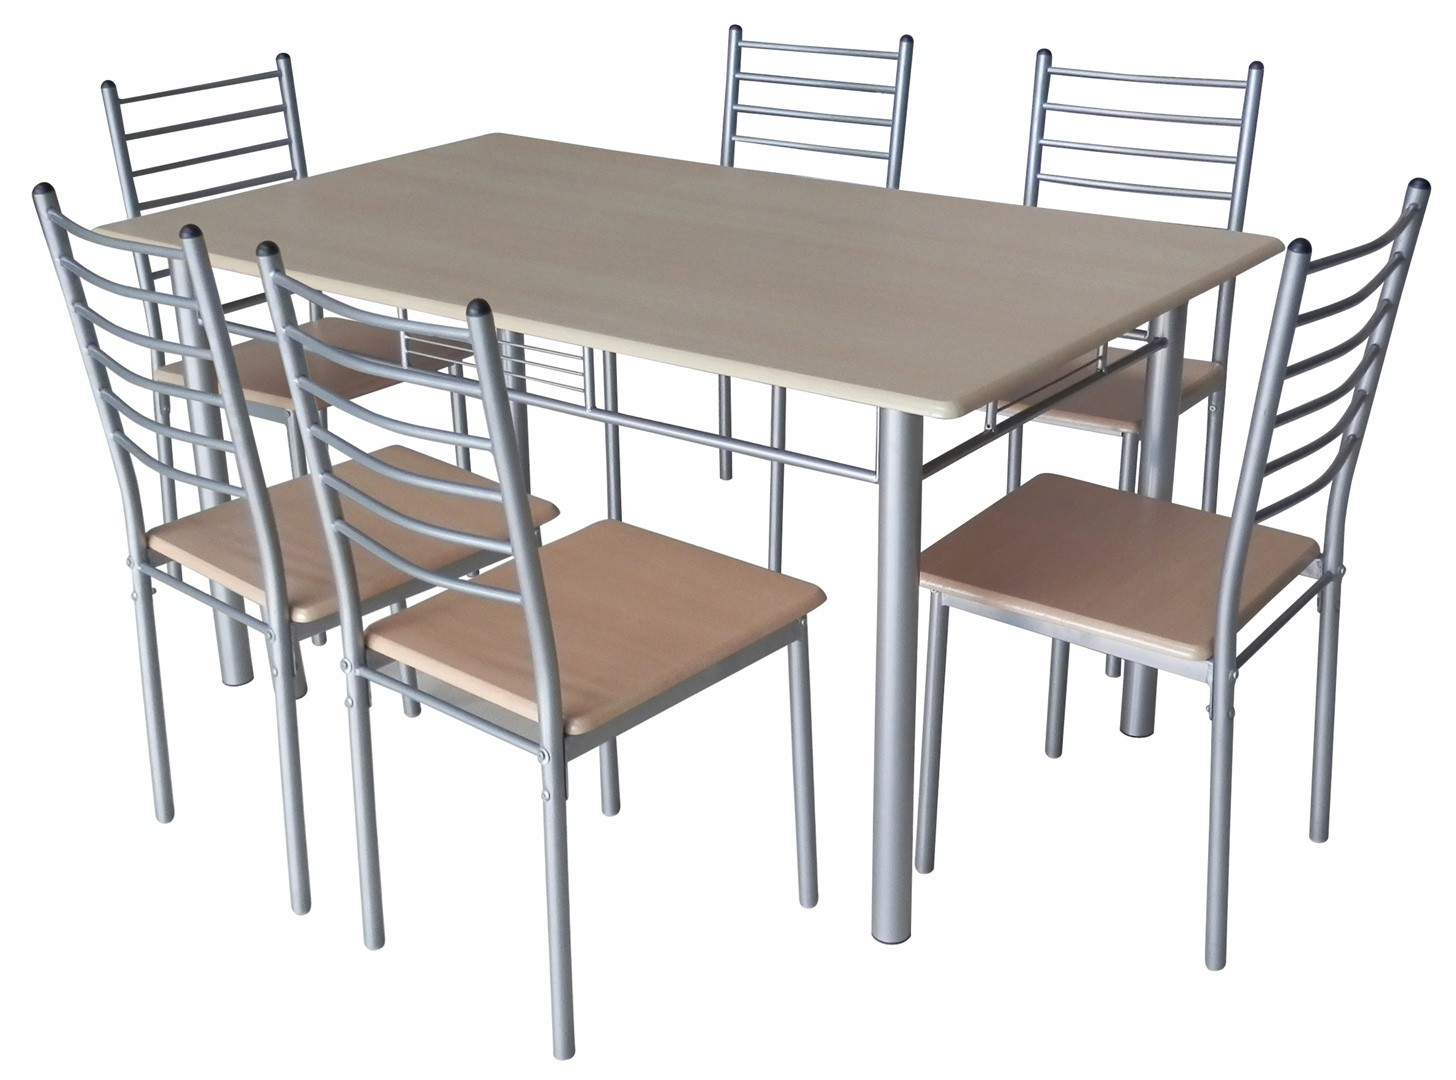 Ensemble table et chaises de cuisine but chaise id es for But table et chaises de cuisine